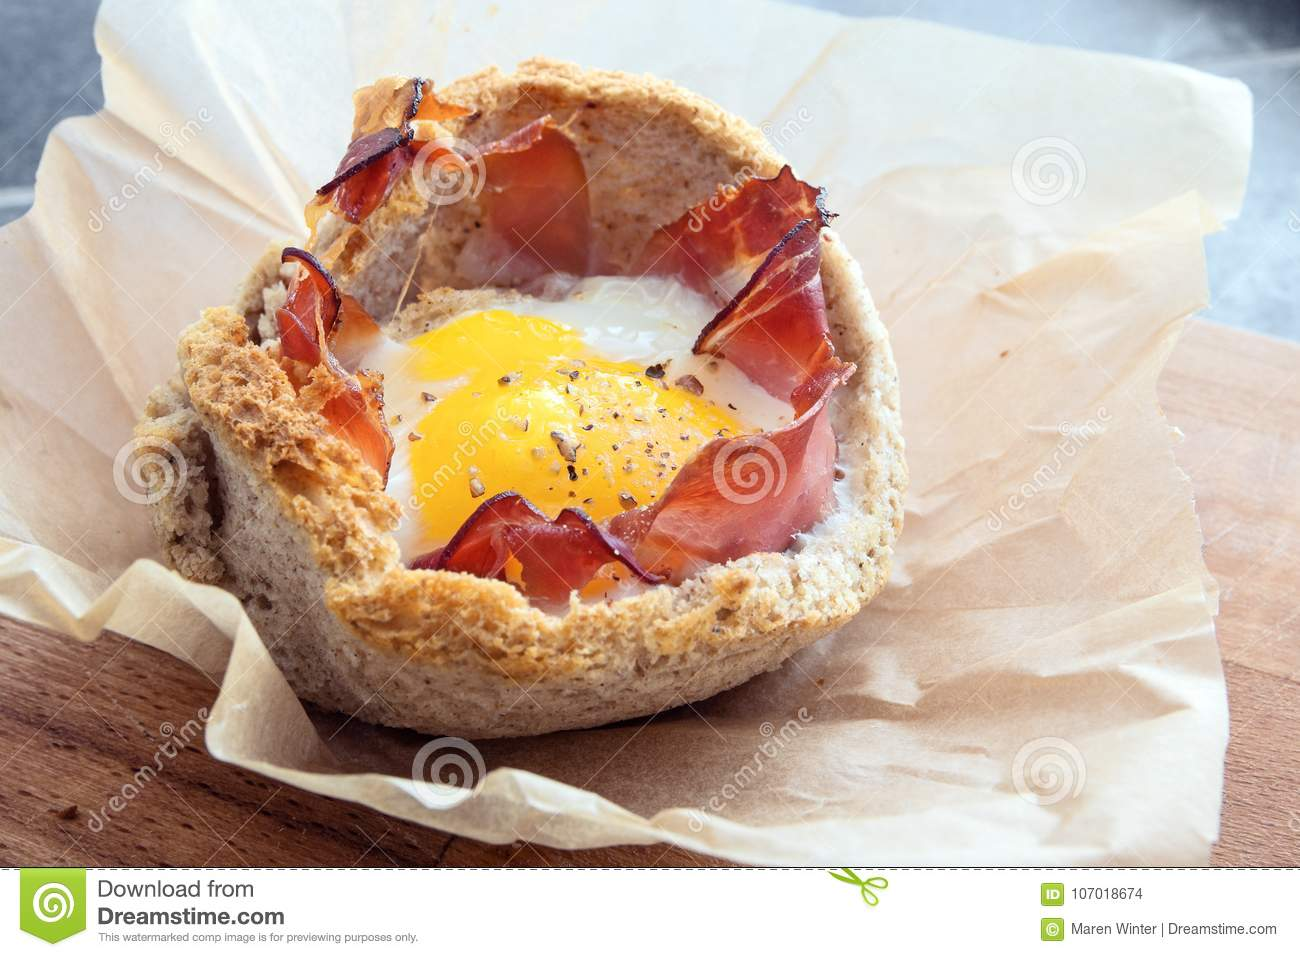 Egg Muffin With Bacon And Toasted Bread On Baking Paper Creative Breakfast Copy Space Stock Photo Image Of Baked Morning 107018674